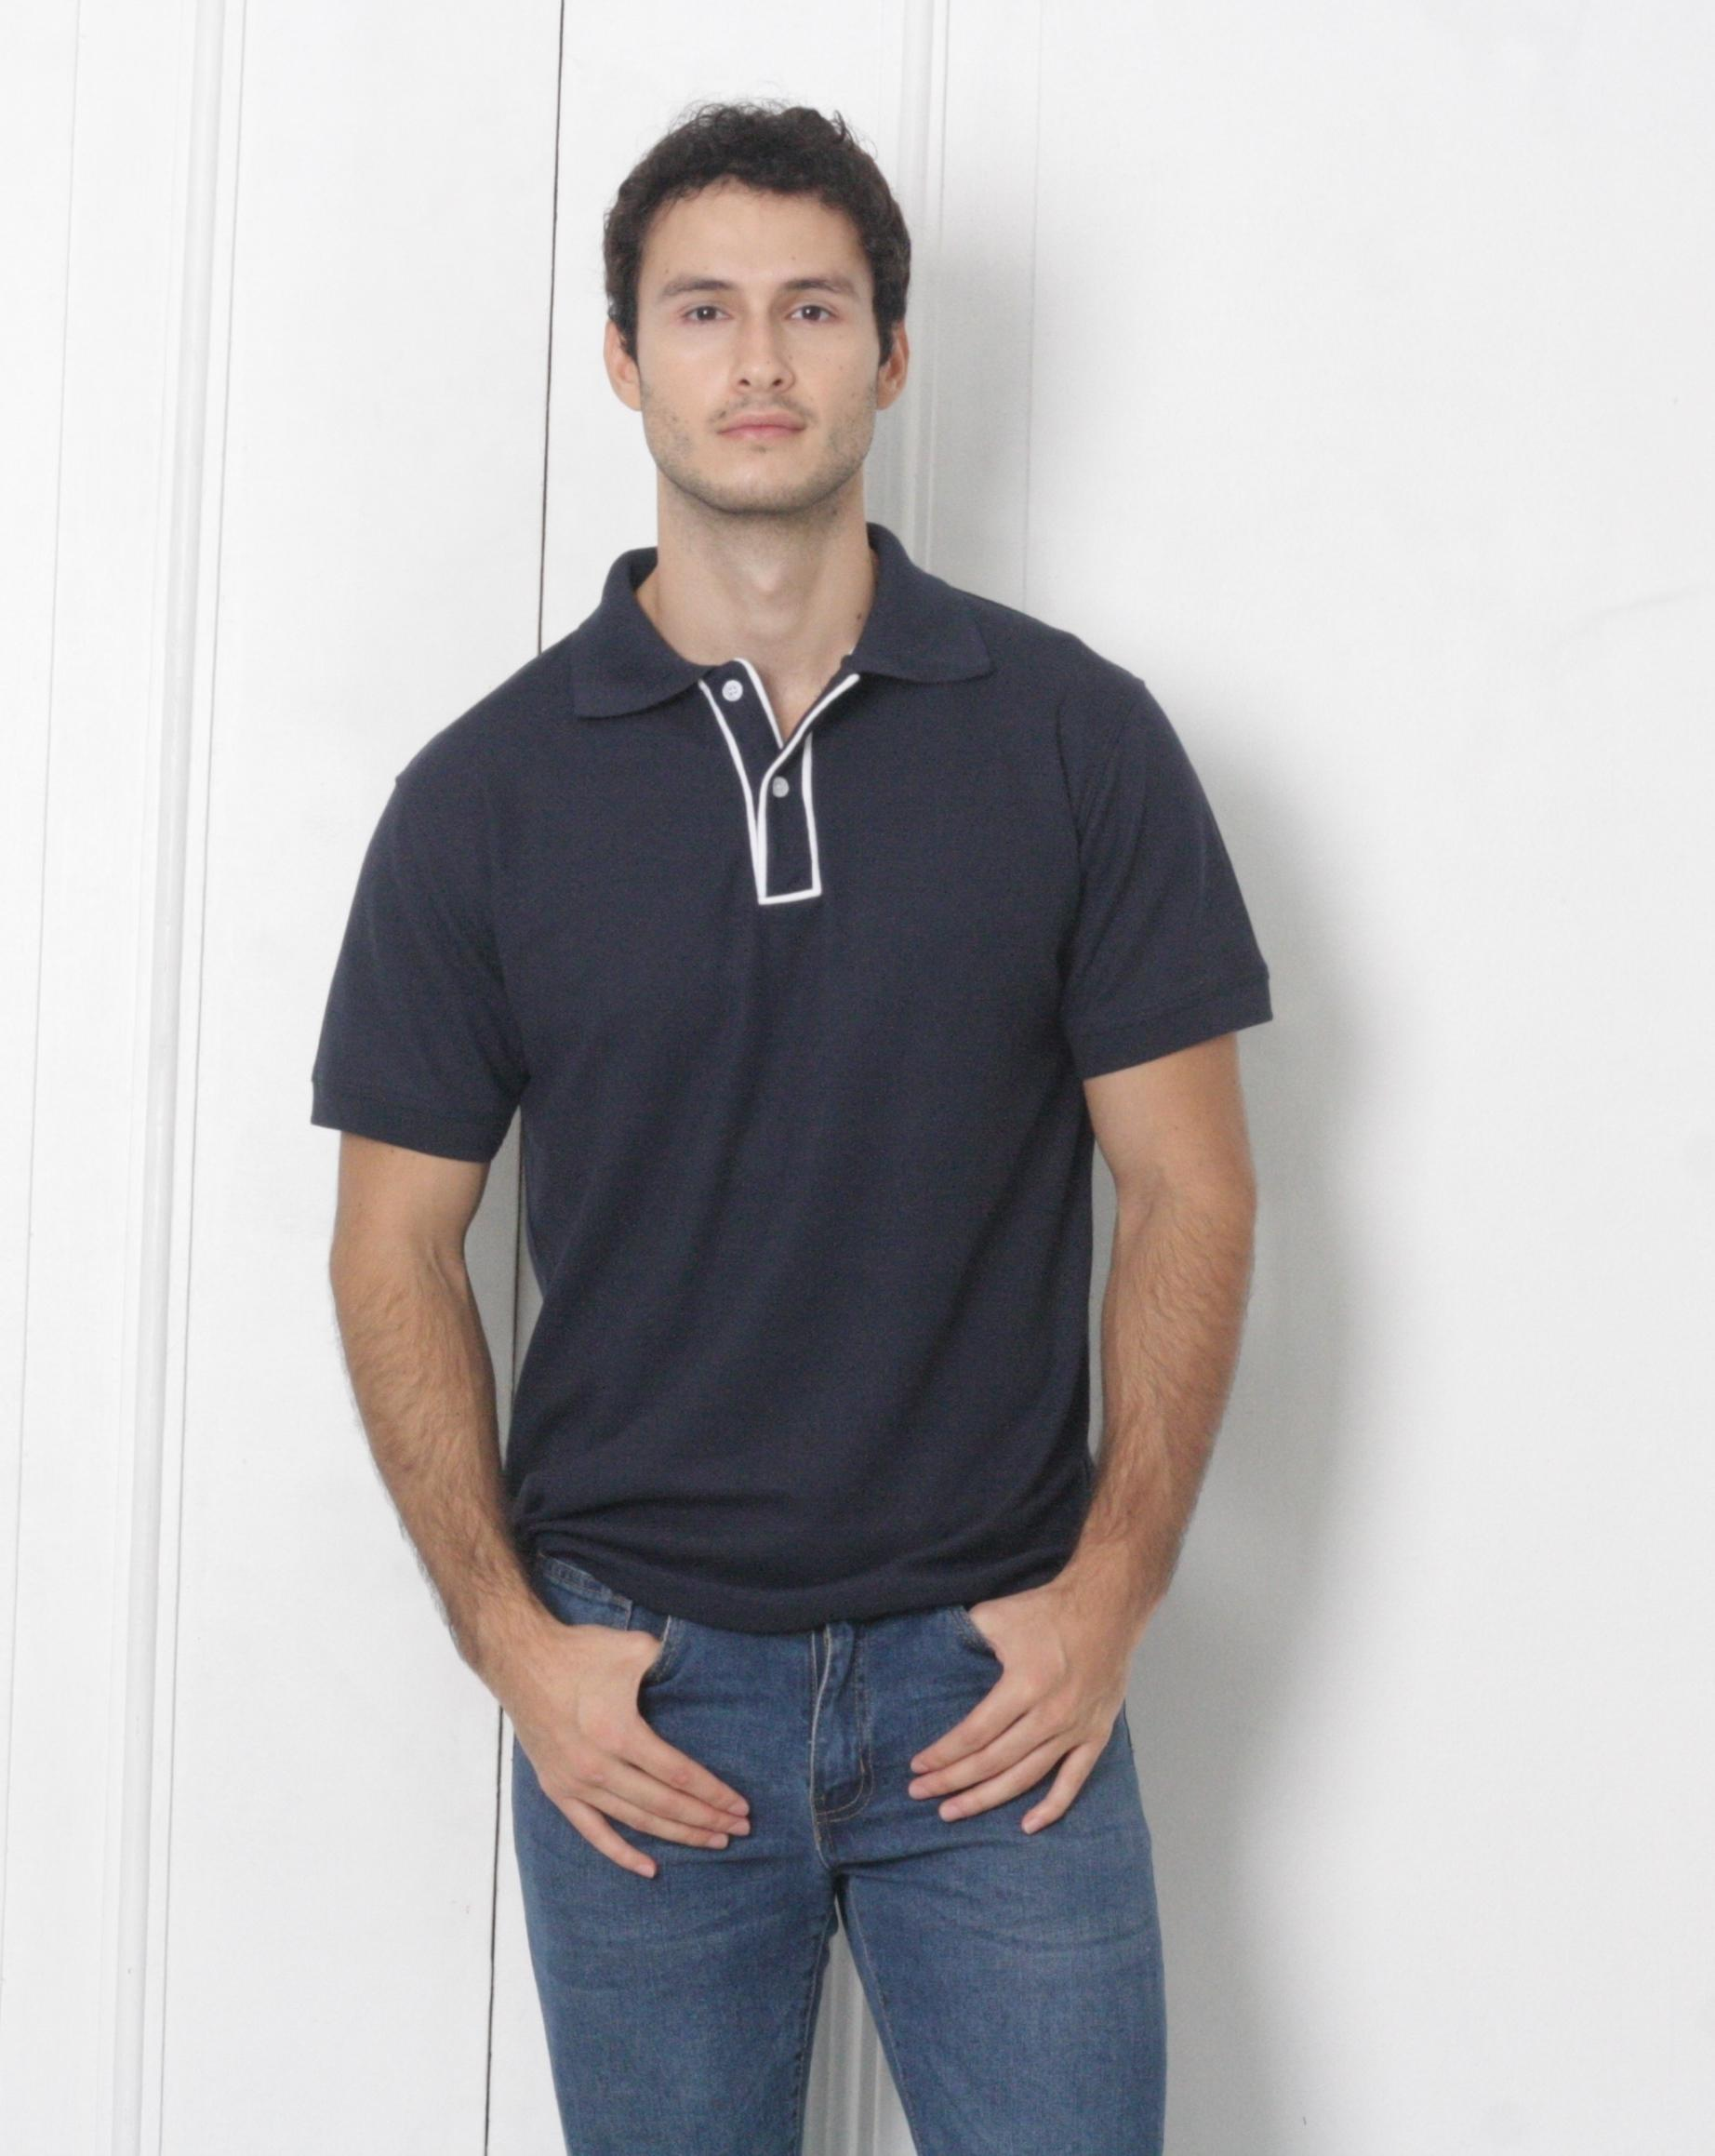 91d97c701 Polo for Men for sale - Mens Polo Online Deals & Prices in ...